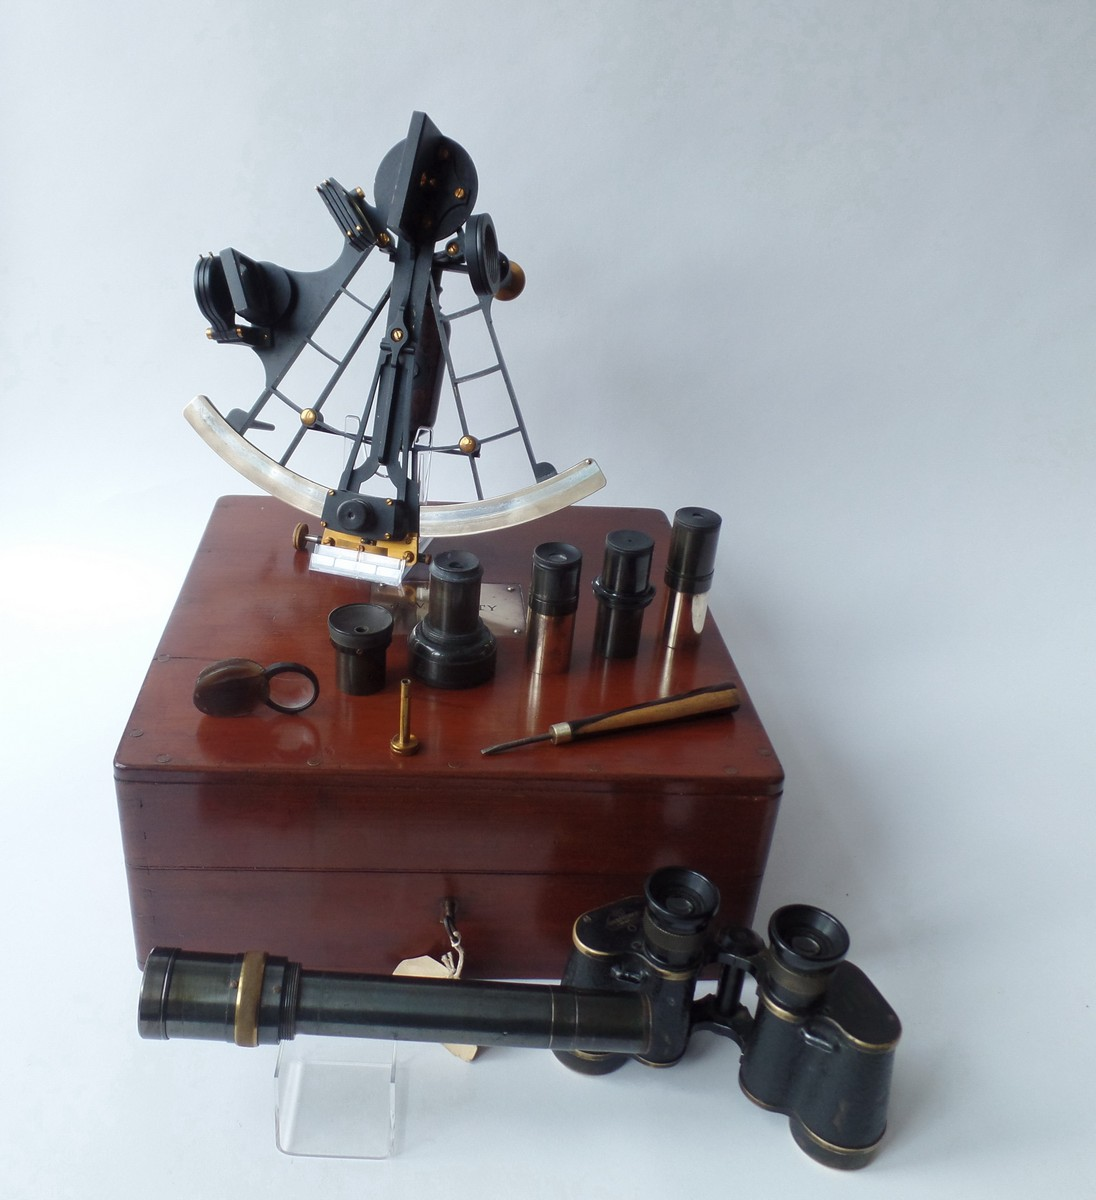 A FINE 8IN. RADIUS VERNIER SEXTANT BY H. HUGHES & SON LTD - LONDON